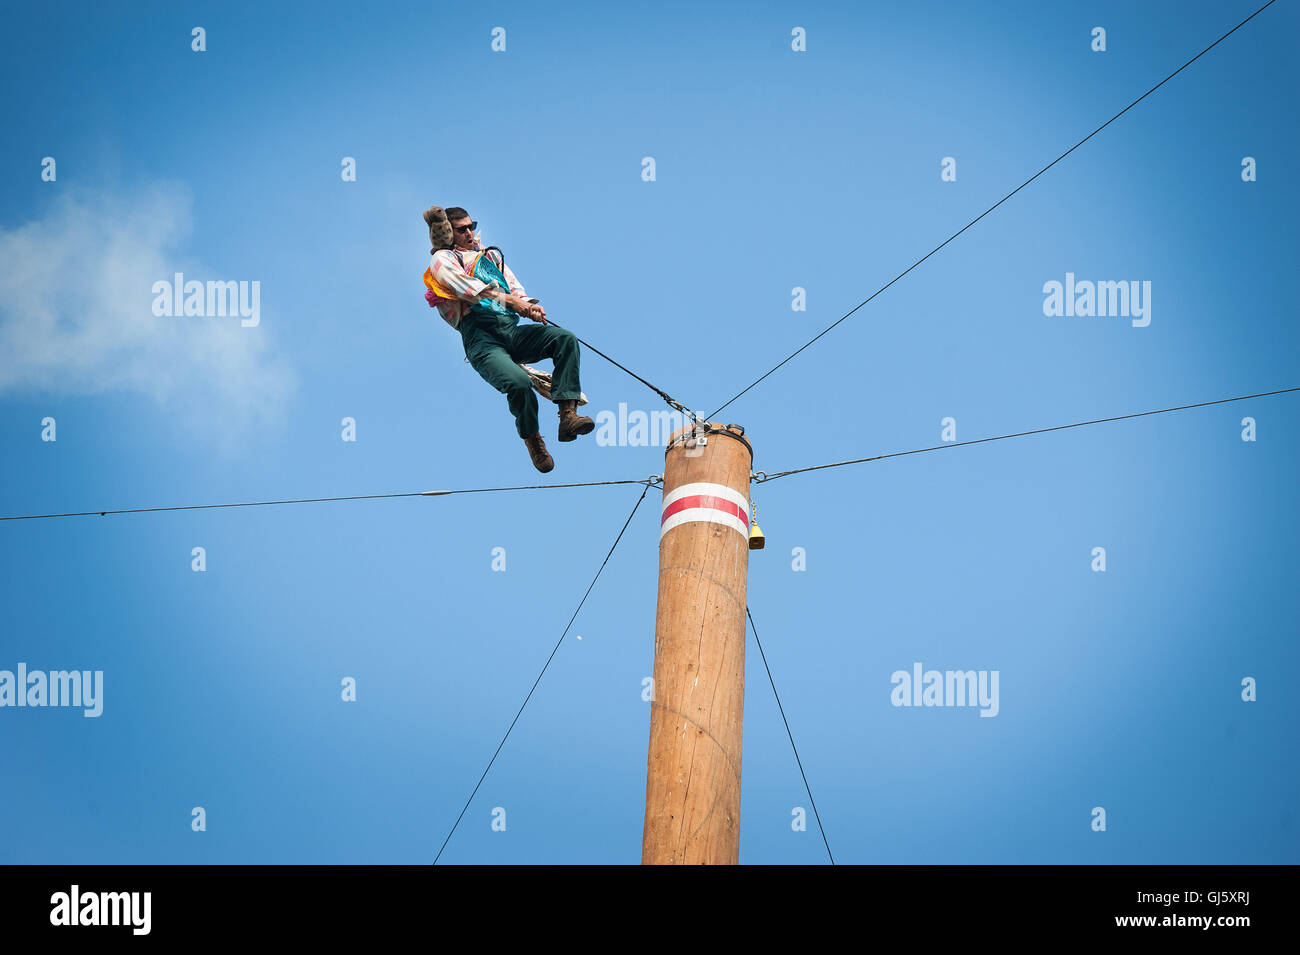 Brian Bartow does the famous tree event.  The Squamish Loggers Day Loggers Sports event.  Squamish BC, Canada - Stock Image